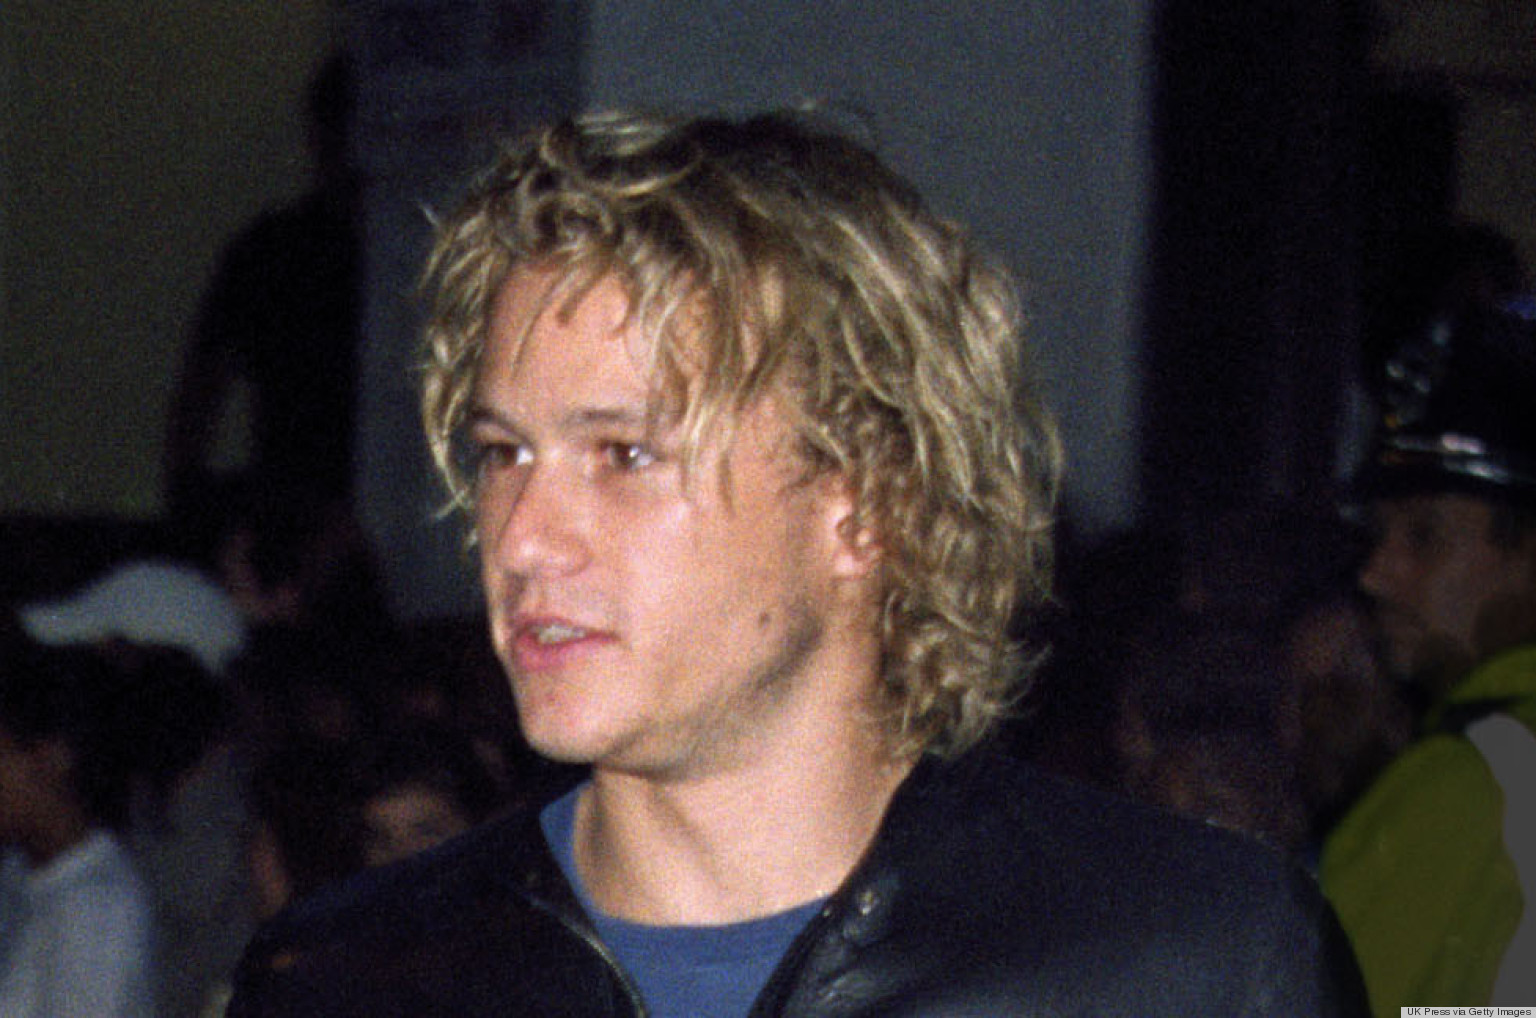 Heath Ledger And Heather Graham's Early Aughts Style (PHOTO): www.huffingtonpost.com/2013/04/04/heath-ledger-style-photo_n...